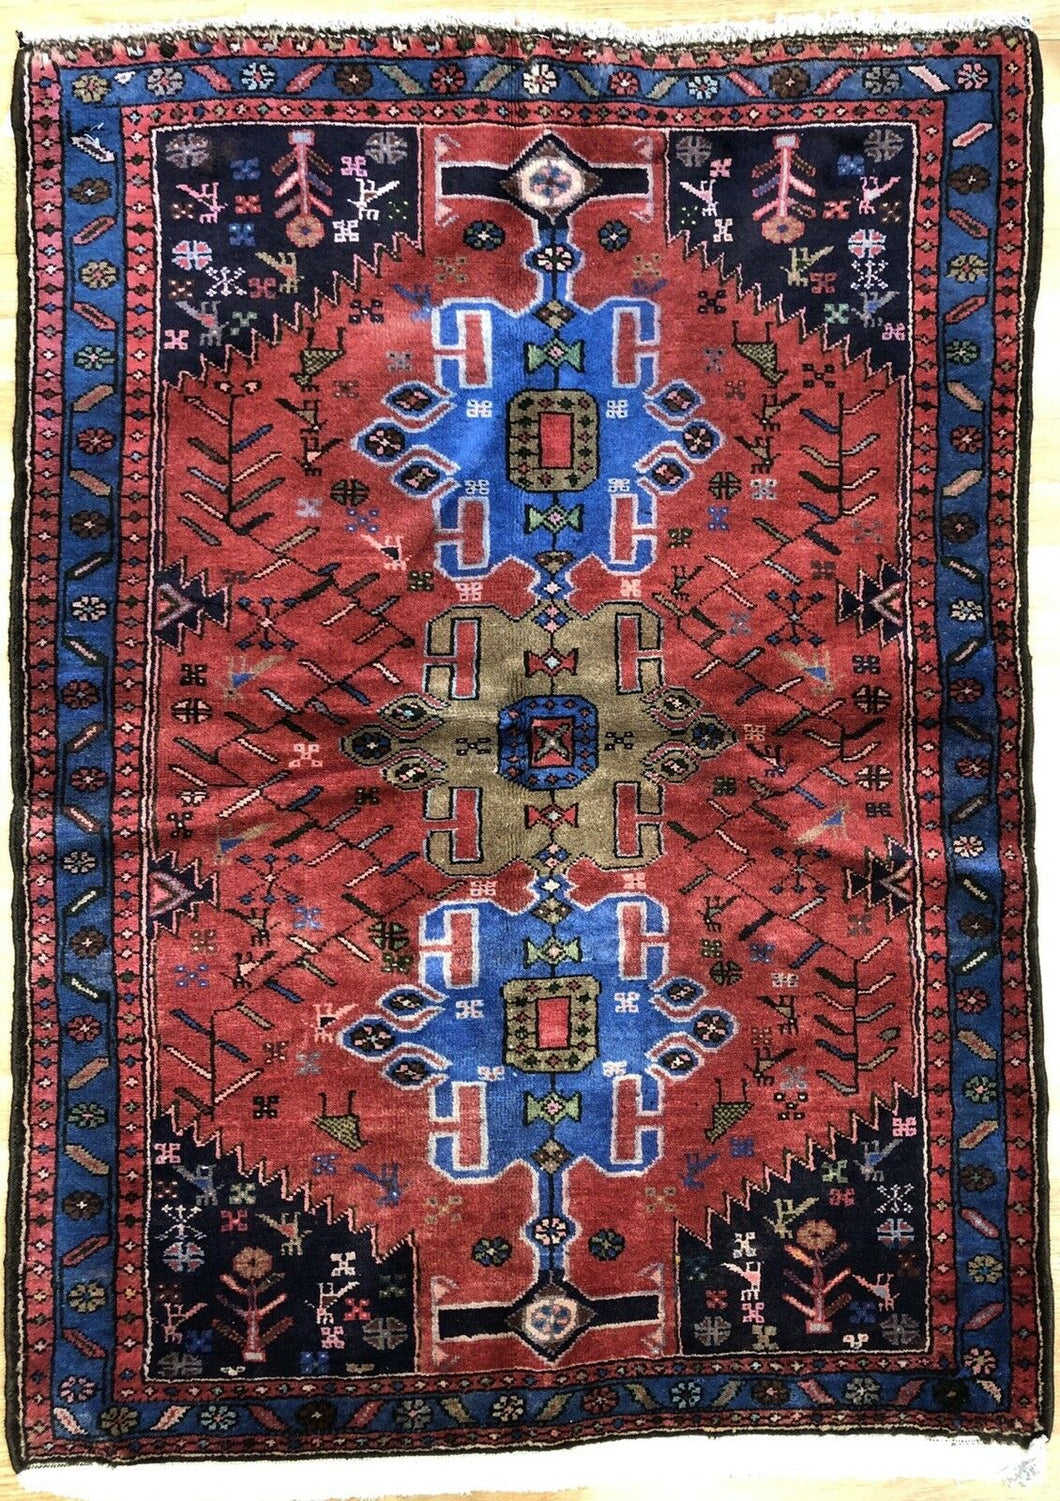 Handsome Hamadan - 1960s Antique Persian Rug - Tribal Carpet - 3'5